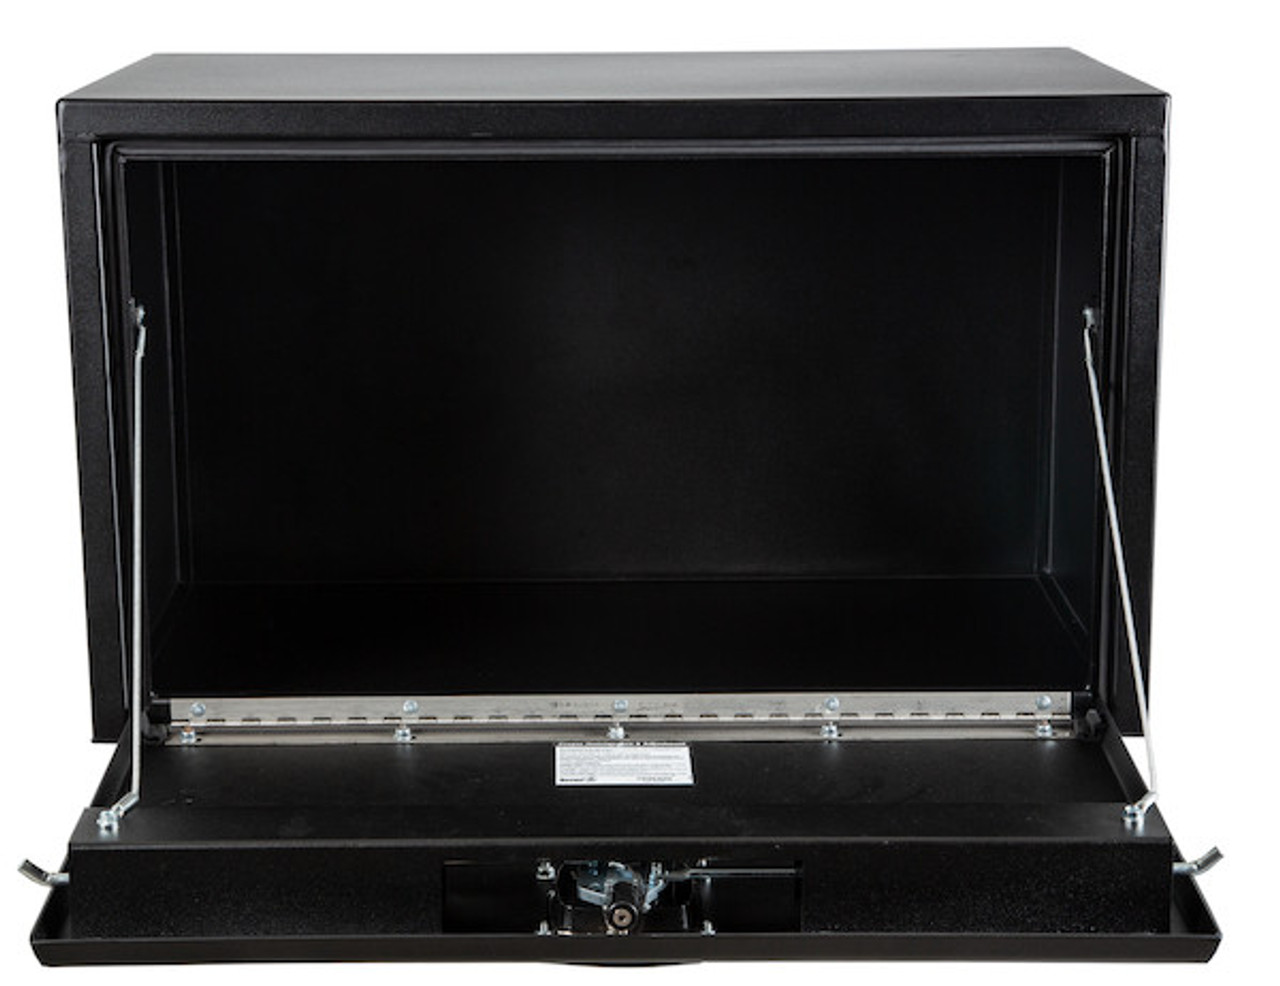 """1732503 BUYERS PRODUCTS TEXTURED MATTE BLACK STEEL UNDERBODY TRUCK TOOLBOX WITH 3-POINT LATCH 18""""Hx18""""Dx30""""W Picture # 4"""